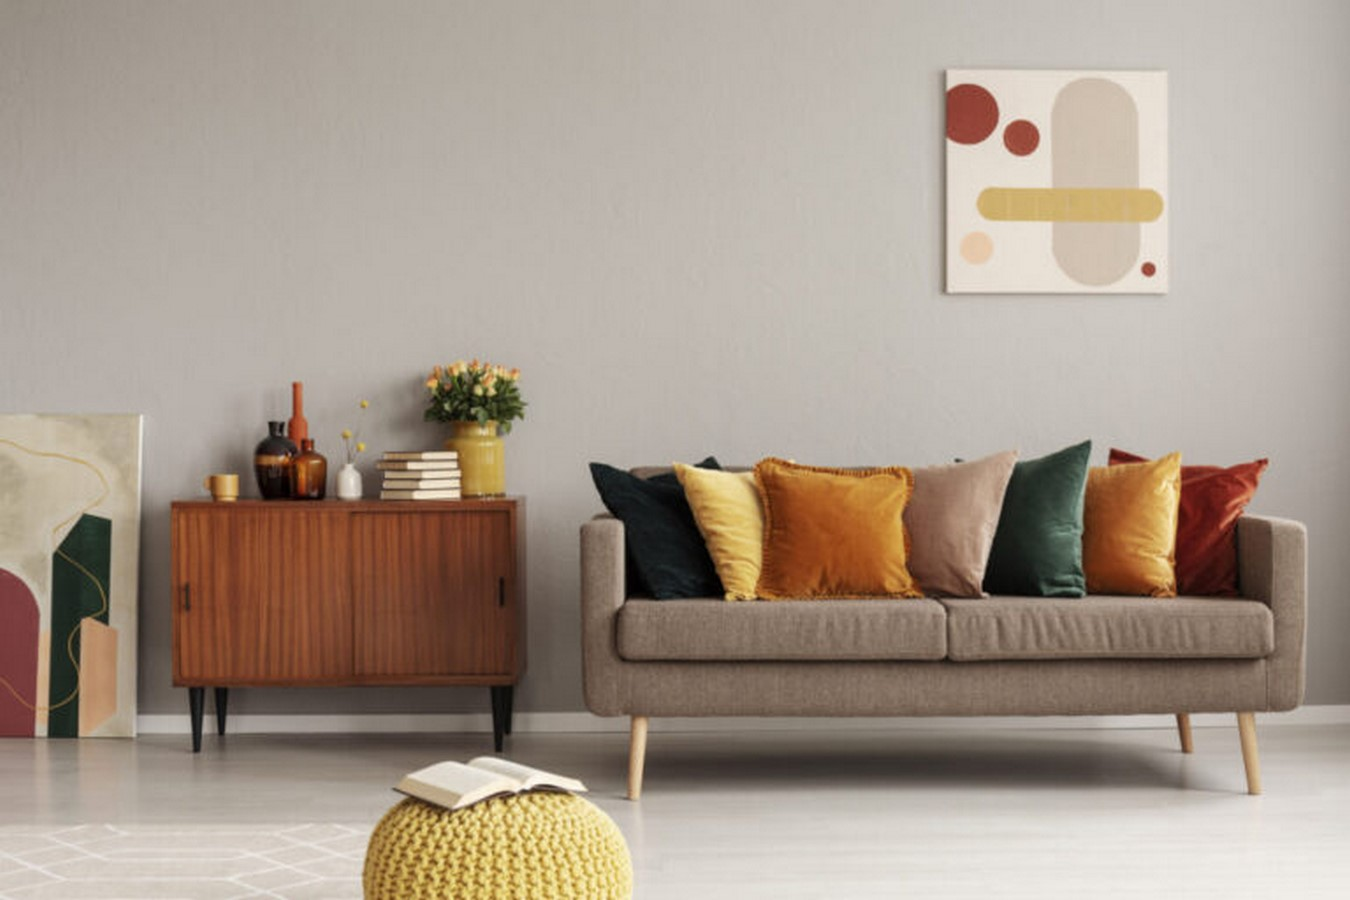 30 Examples of split complementary color scheme in Interiors - Sheet3